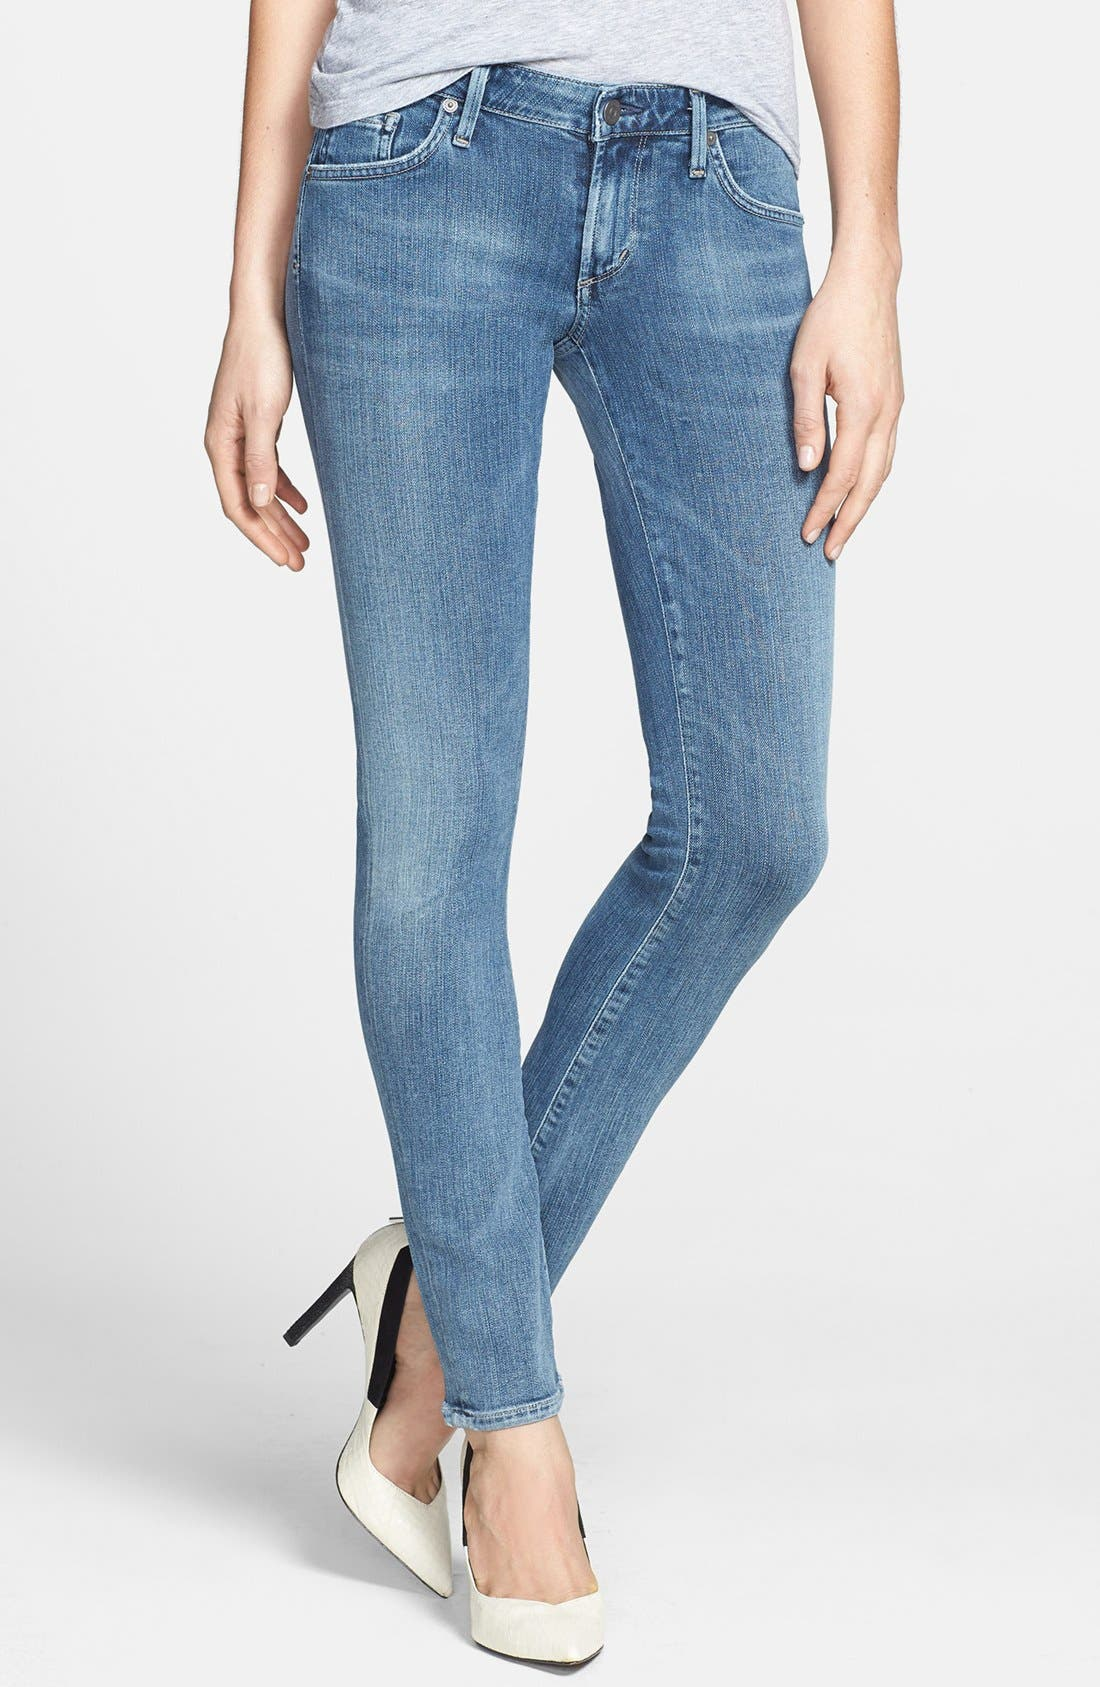 Alternate Image 1 Selected - Citizens of Humanity 'Racer' Low Rise Skinny Jeans (Gaze)